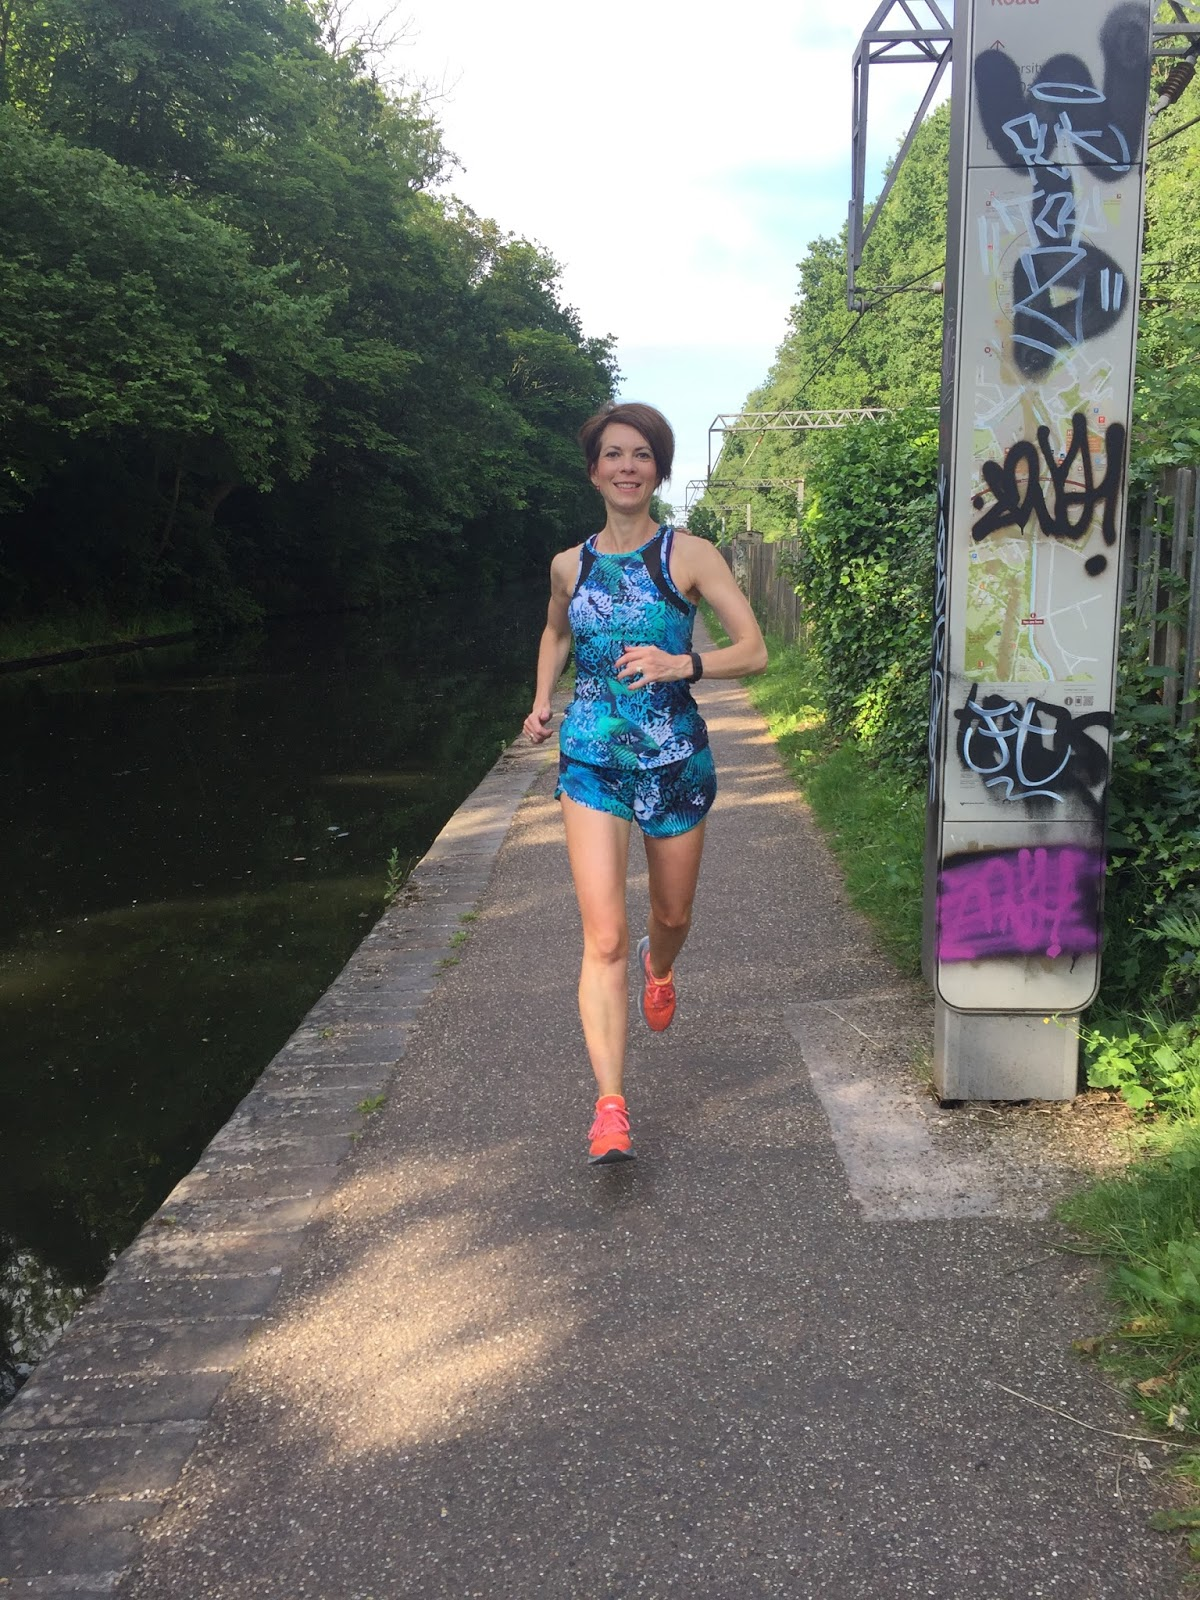 House of Fraser Activewear – not what you might expect!